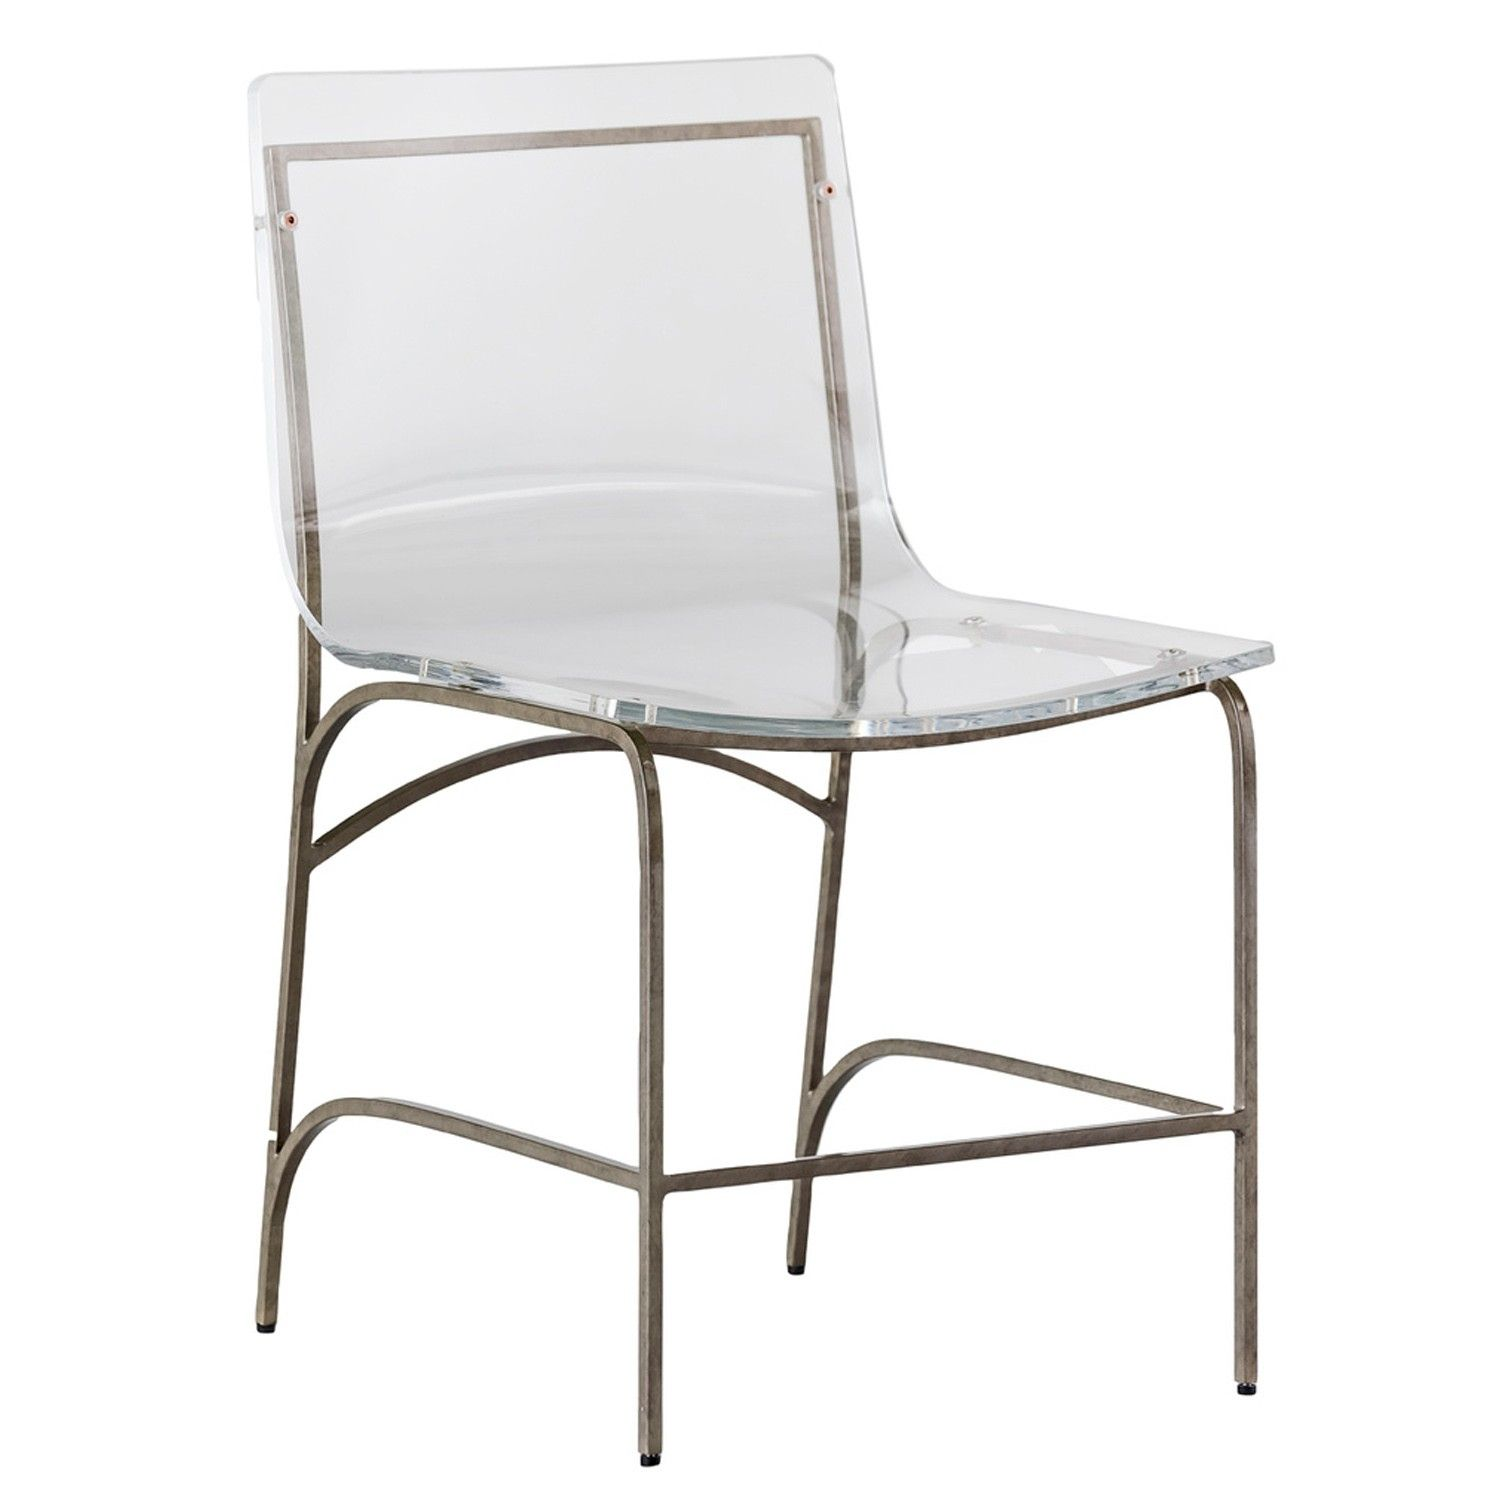 The penelope clear lucite and silver metal dining chair is a clear acrylic dining chair with an antique silver metal base that has a subtle curve to the